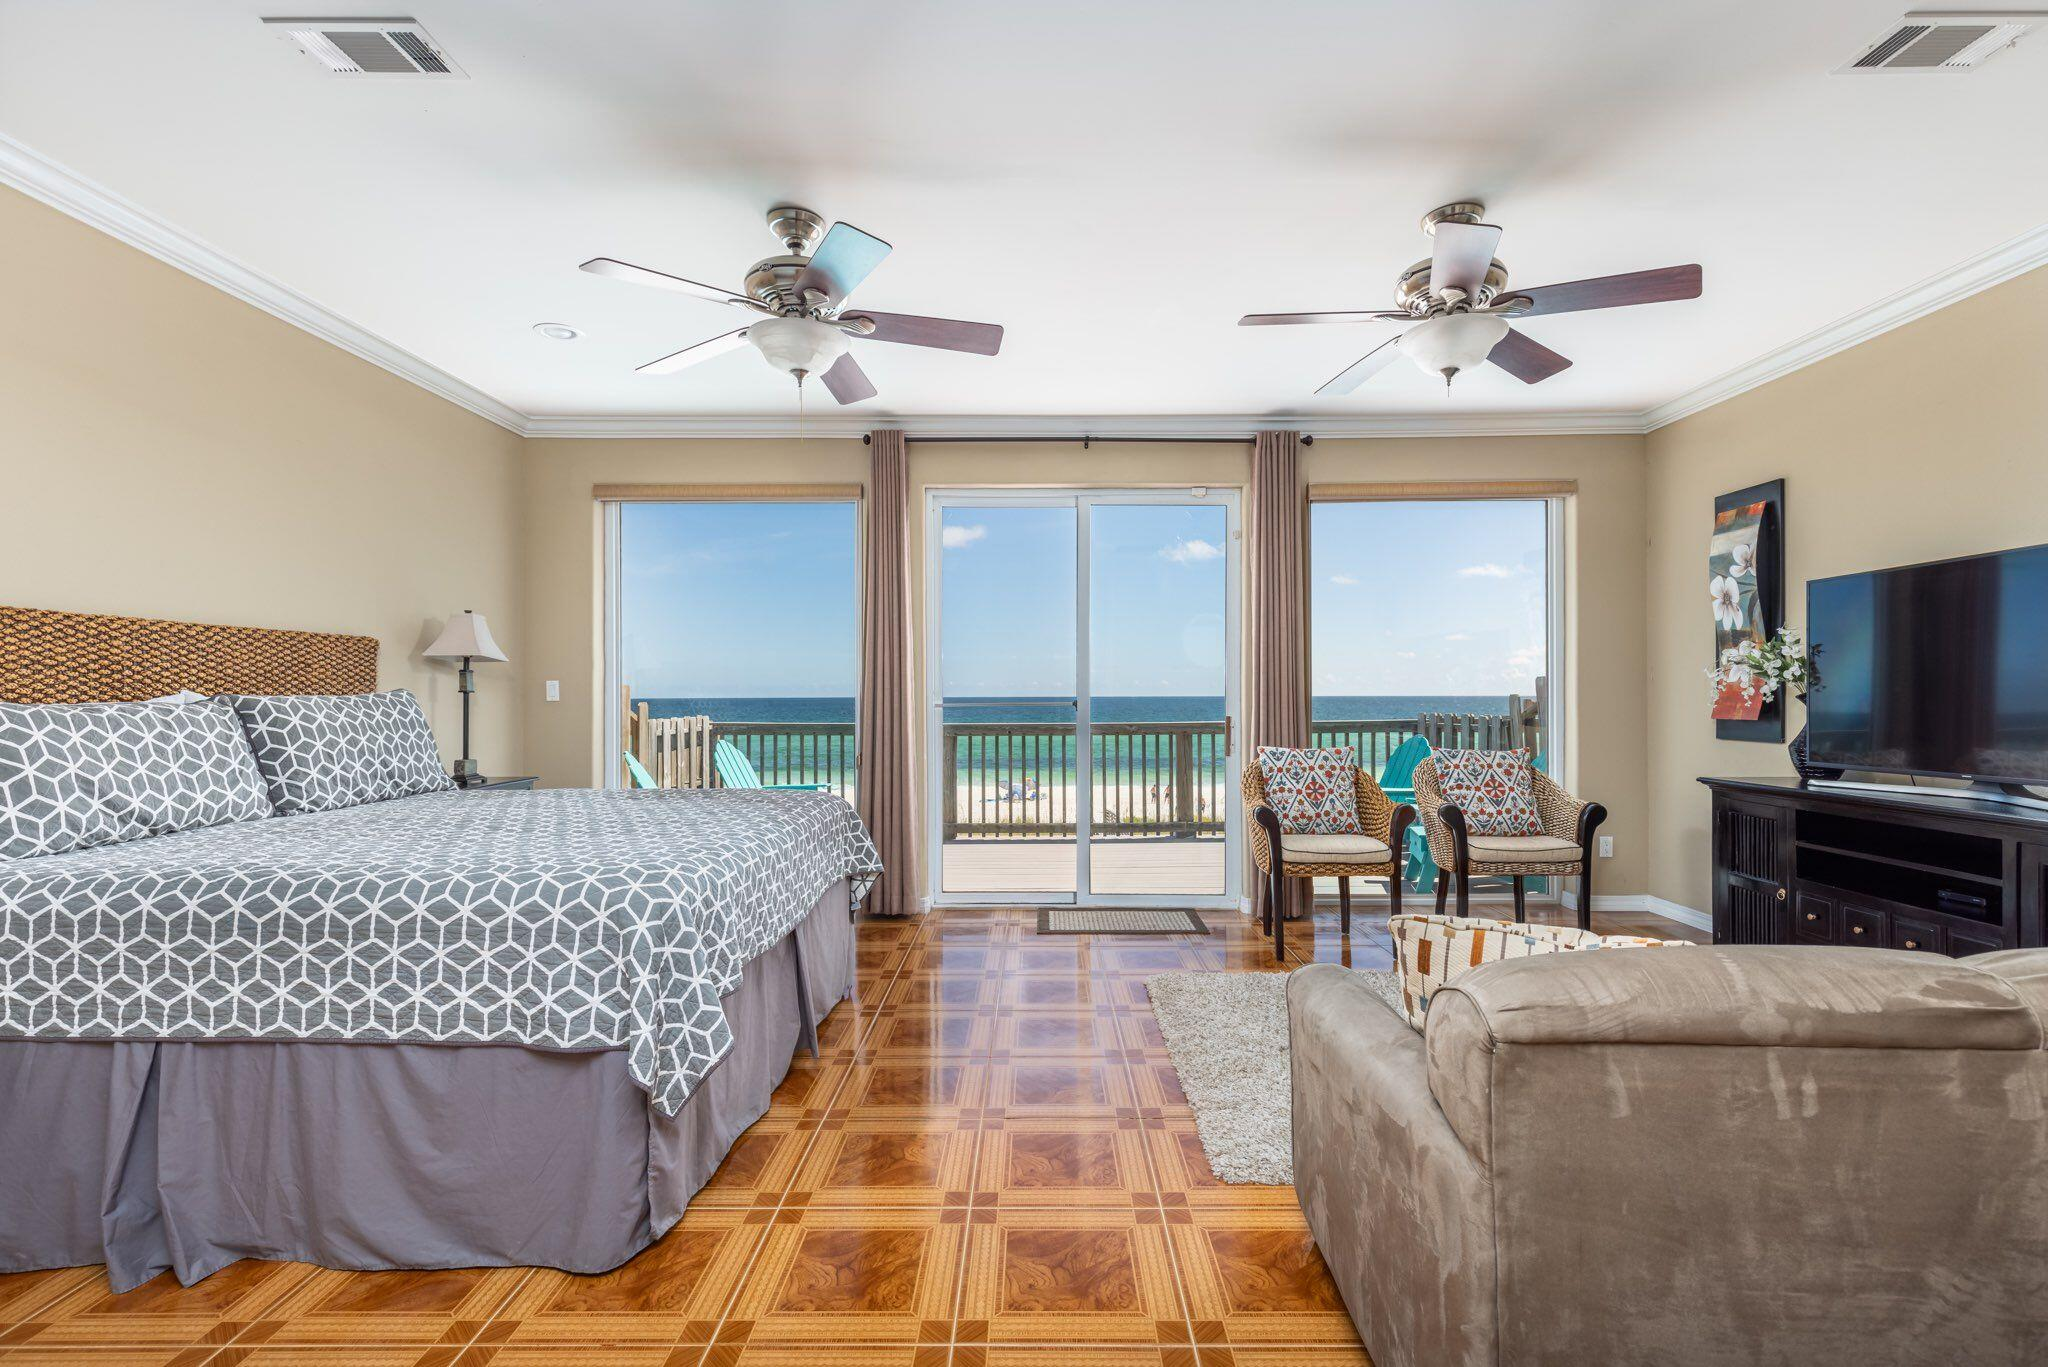 Gulf front town home on beautiful Navarre Beach with stunning views. This 3 bedroom 3 bath townhouse comes fully furnished ready to enjoy or continue to rent out. The main level has an open kitchen/dining/living area with  views of the Gulf. The expansive decks on the first and second floor were just recently upgraded with Trex composite boards. Kitchen is completely equipped with granite counter tops, stainless appliances, including a wine cooler and a brand new refrigerator. One bedroom and one bath on the first level with views of the Sound. The second floor has the master with and master bath overlooking the Gulf with a spacious balcony to relax and enjoy the sunrises and sunsets. This complex with 4 townhomes has no HOA and all owners had a new metal roof put on 12/2019.